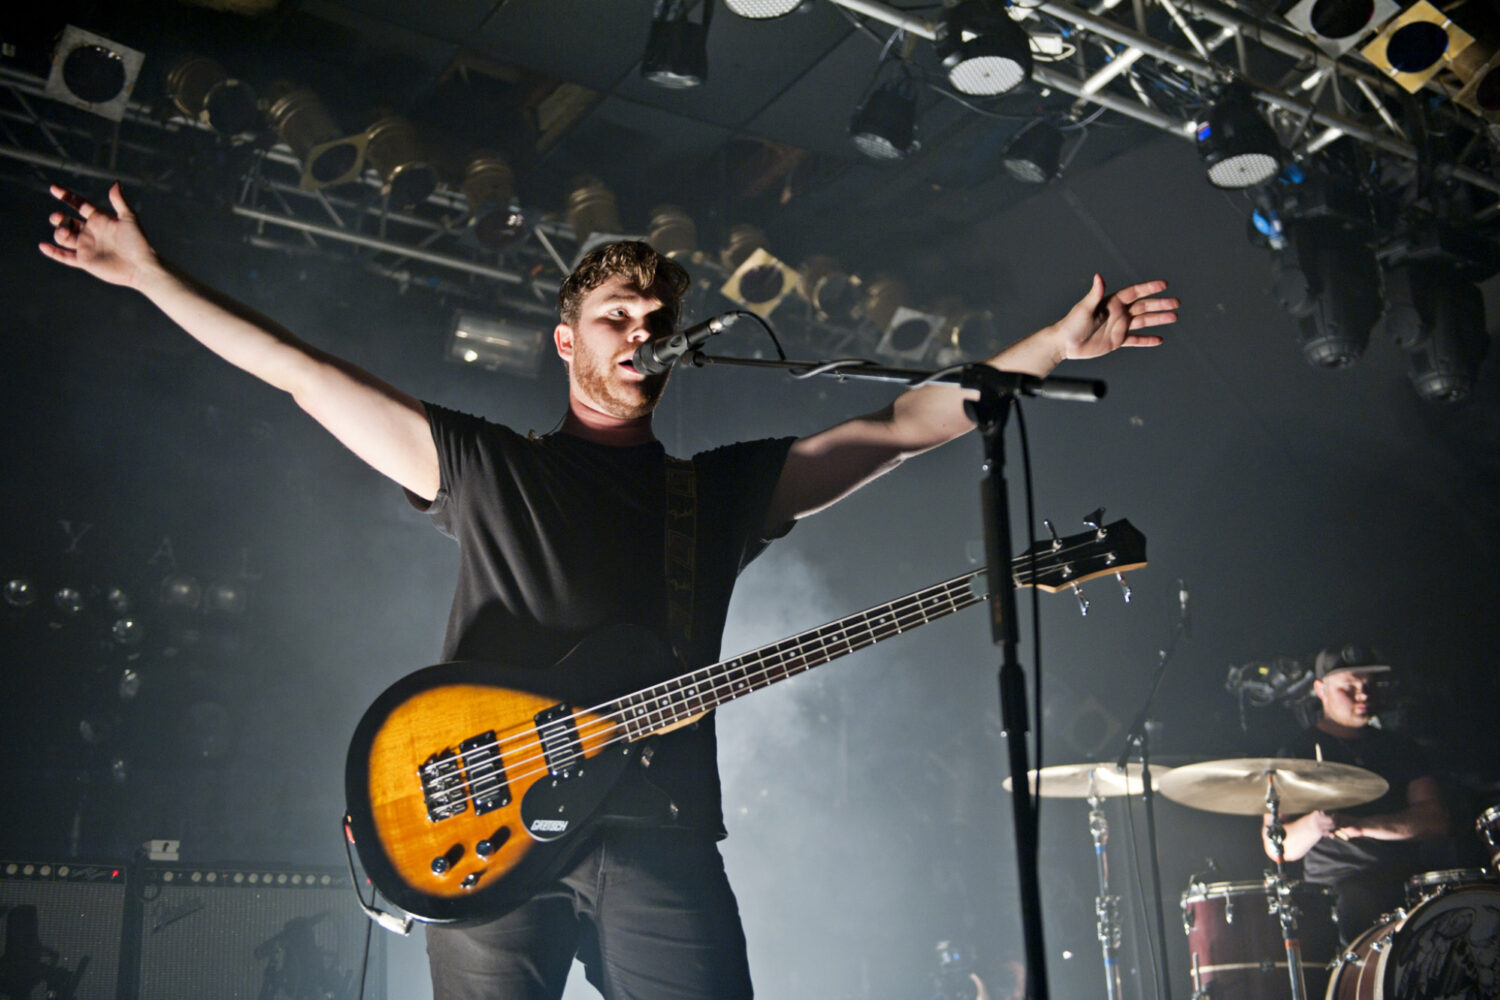 Royal Blood and Richard Ashcroft to headline Y Not Festival